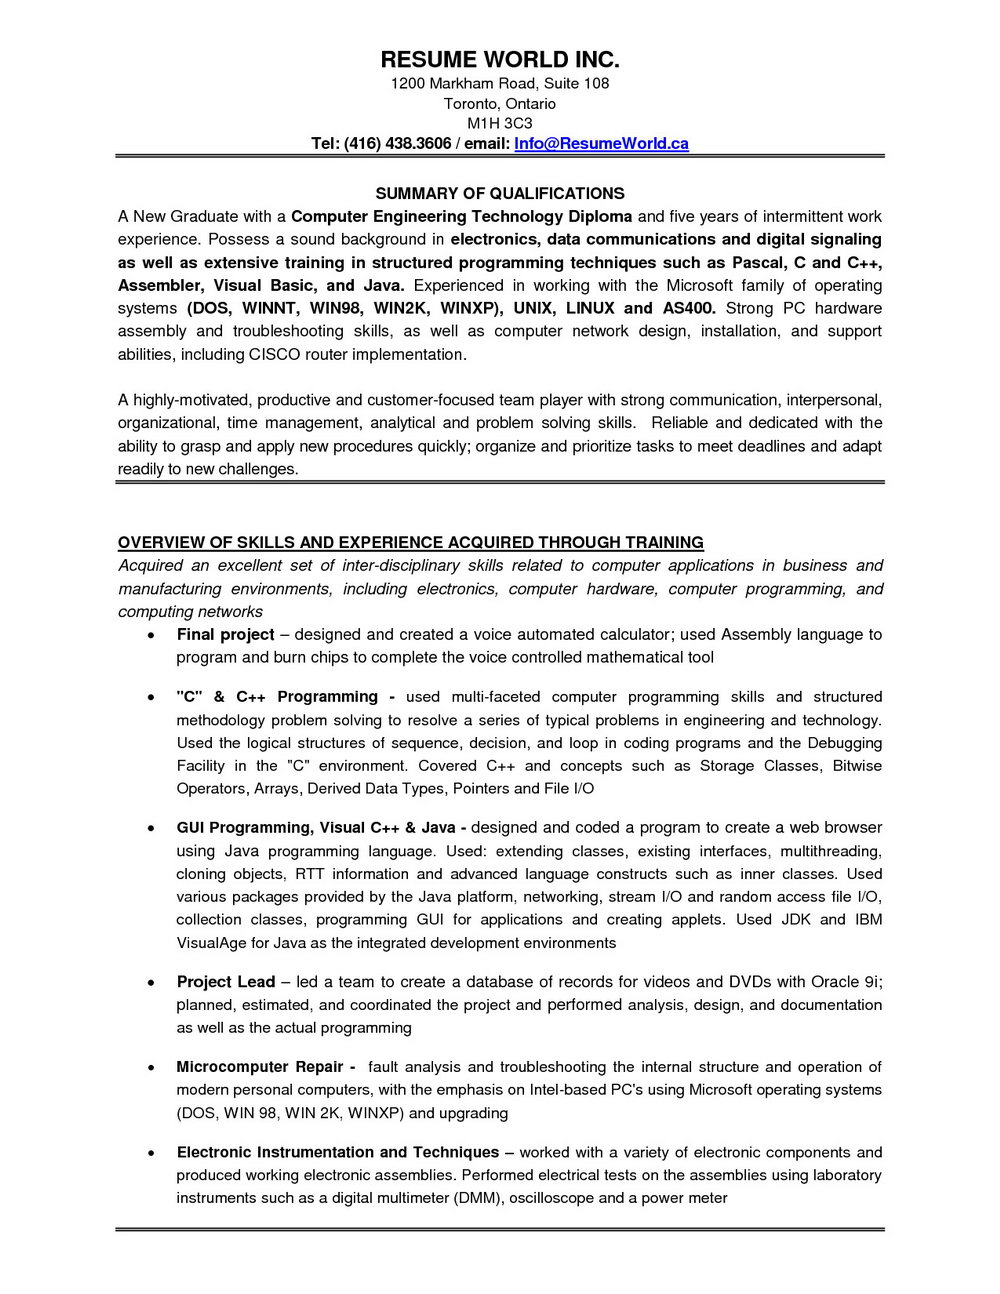 Resume Templates For Experienced Testing Professionals